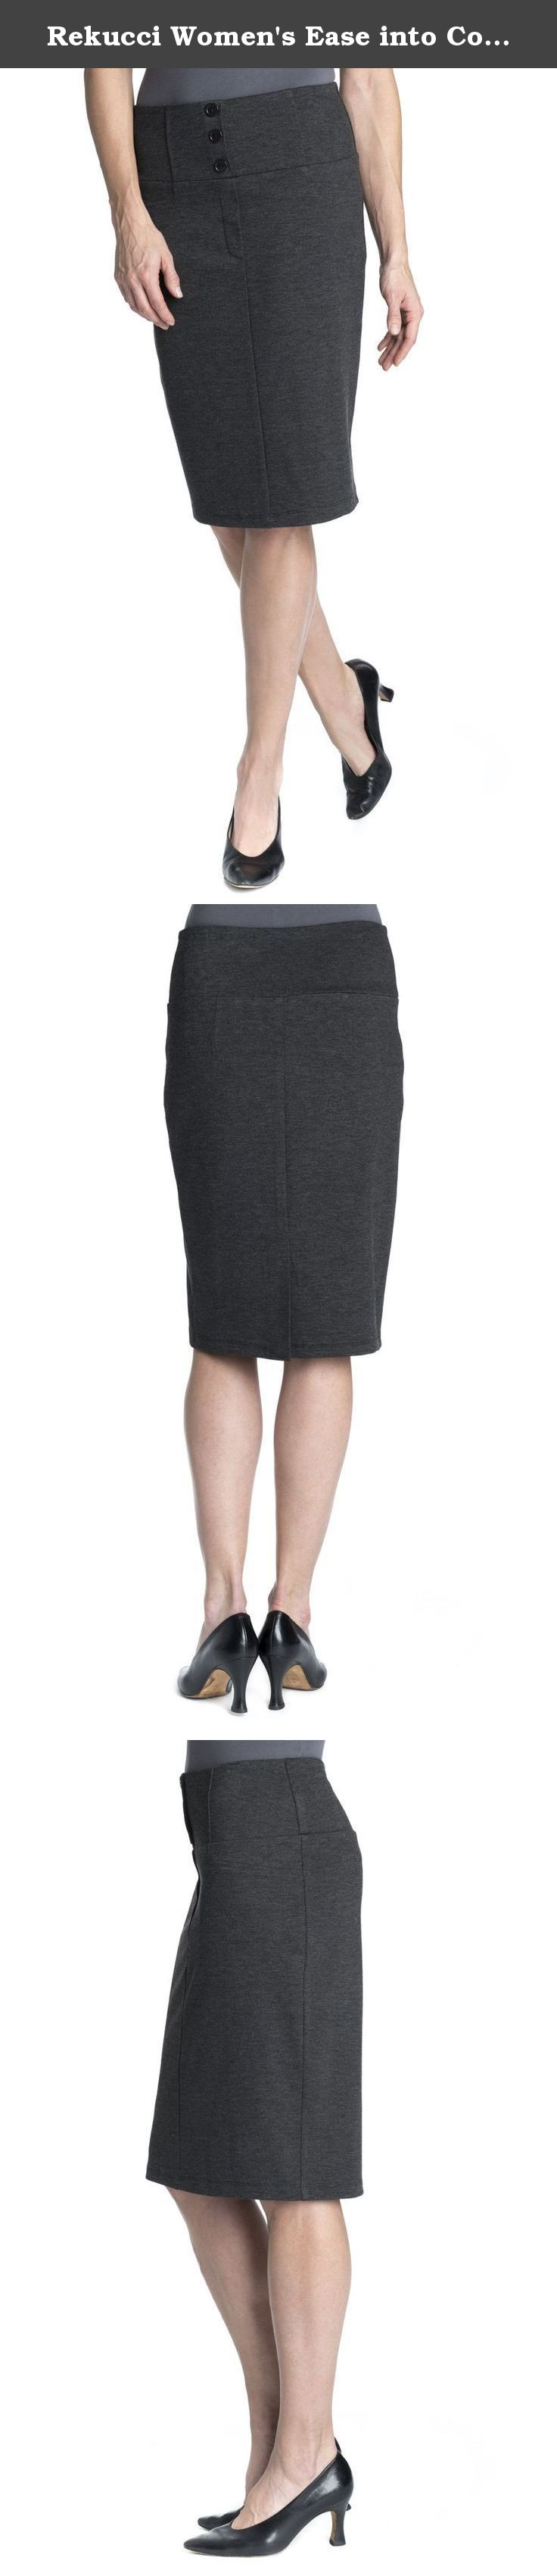 """Rekucci Women's Ease into Comfort Luxe Ponte Pencil Skirt With Button Detail. This luxe ponte pull on skirt with wide waist band and button front detail is perfect for any occasion. The 22"""" Length is very classy and casual and totally comfortable. Wear it to the office, layered with your favorite work wear staples, or dress it down for a casual yet chic look. The button accent at the front waist, faux front fly and faux front pockets have you looking completely put together. The wide…"""